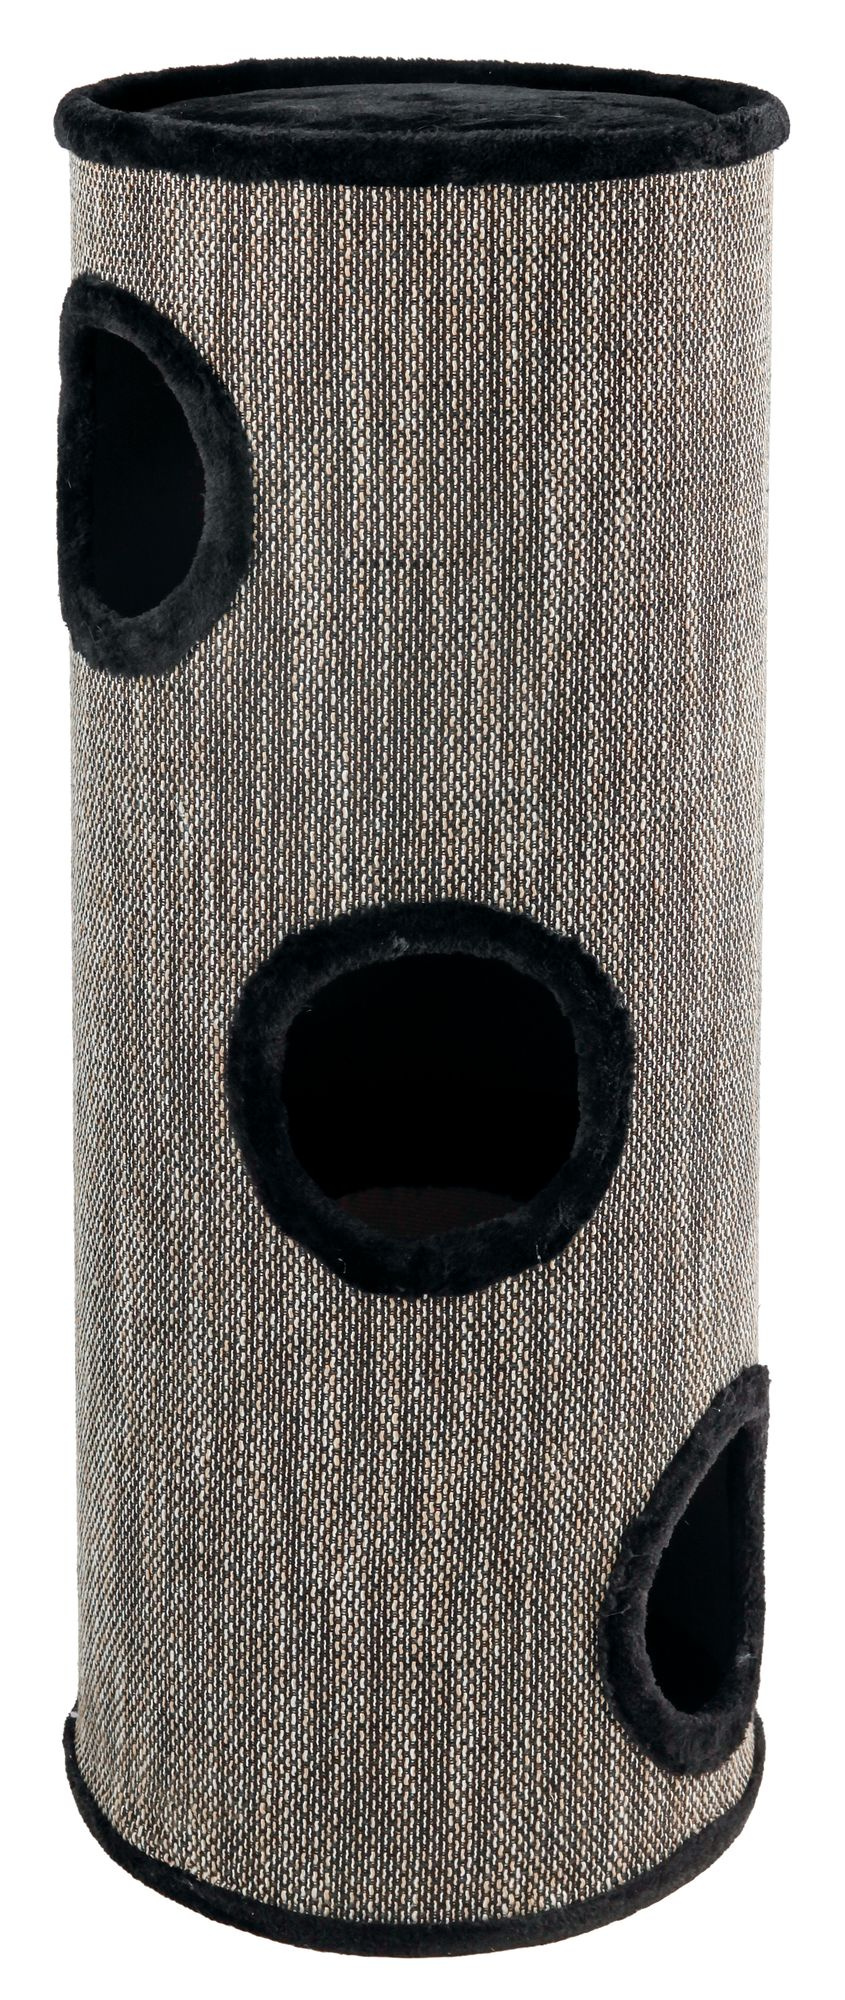 Amando Cat Tower - Mottled Black/Black